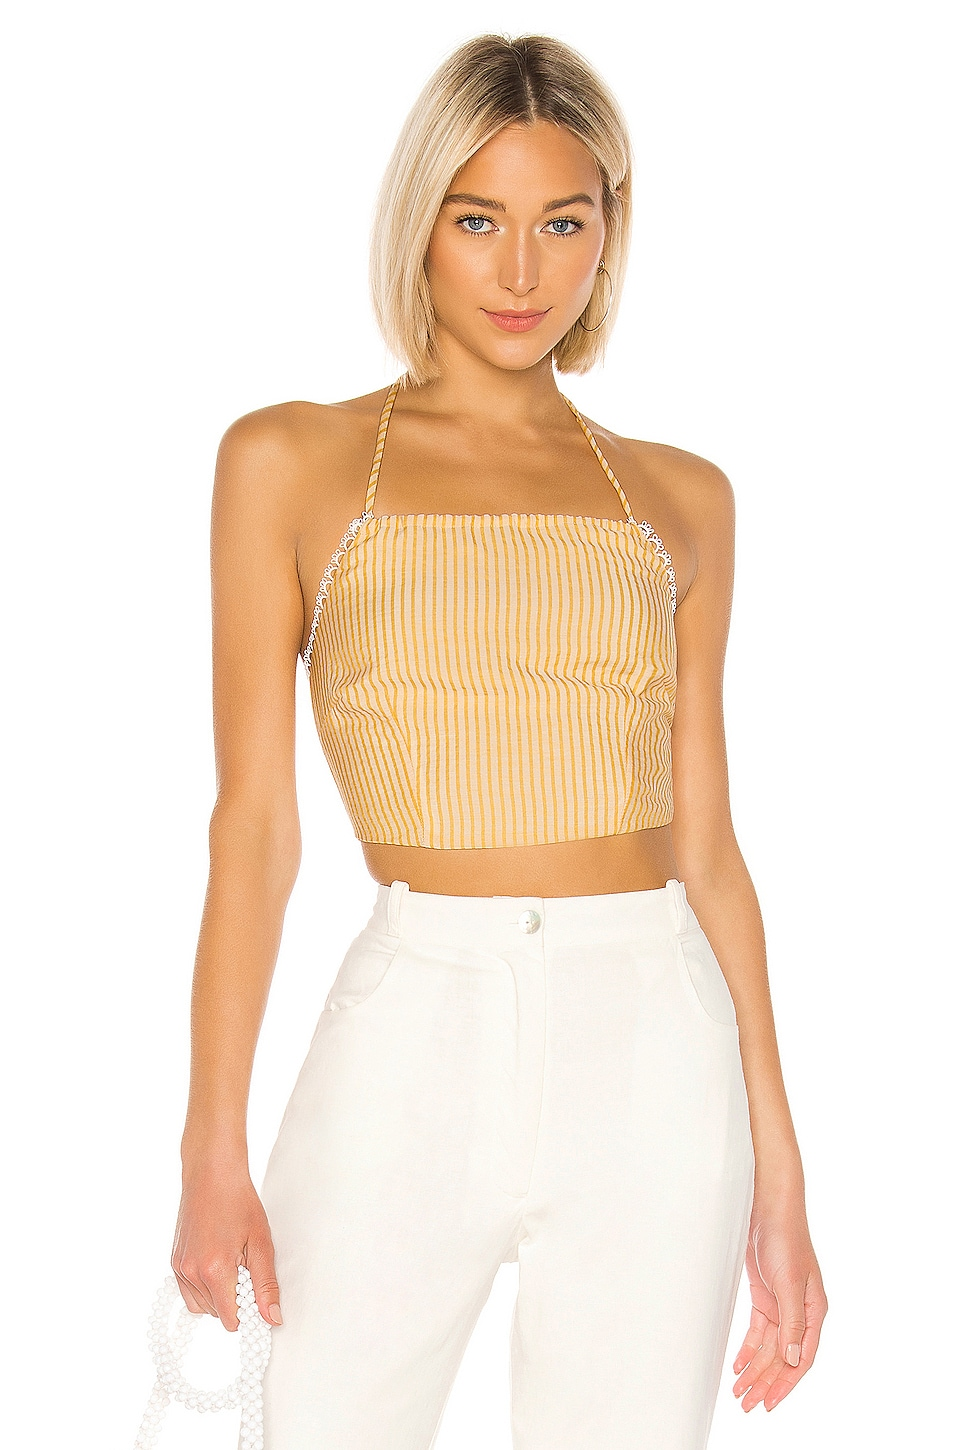 LPA Acerra Top in Ivory and Yellow